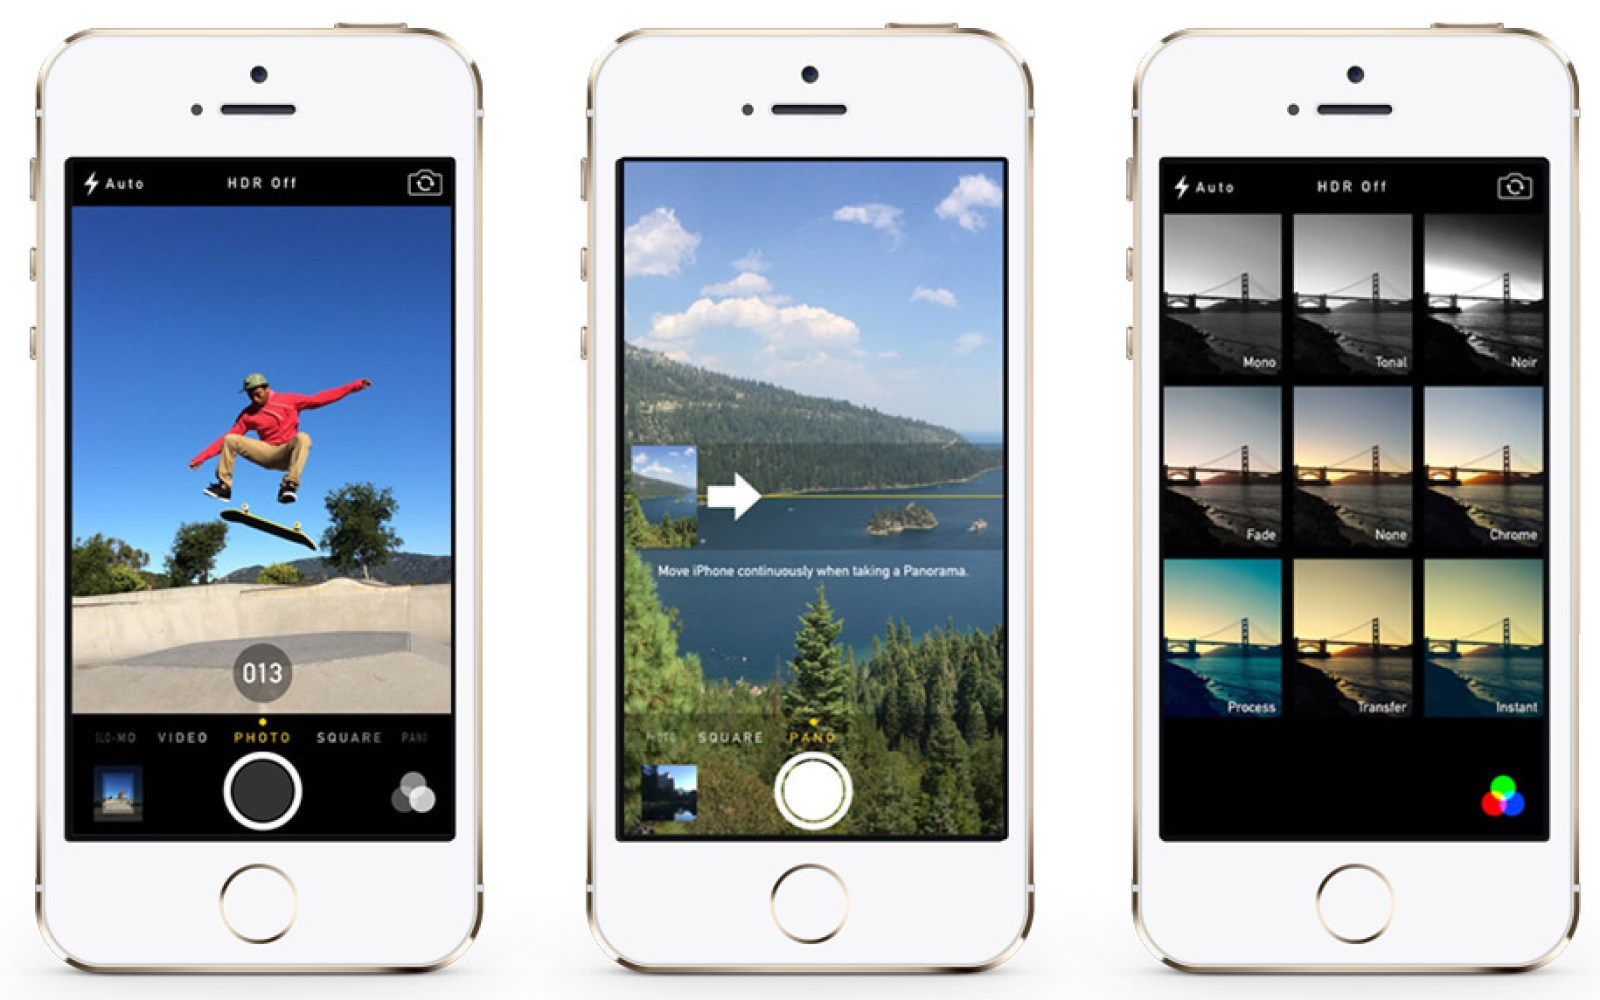 Report suggests iPhone 6 could once again retain 8 MP camera, focus on improved optics